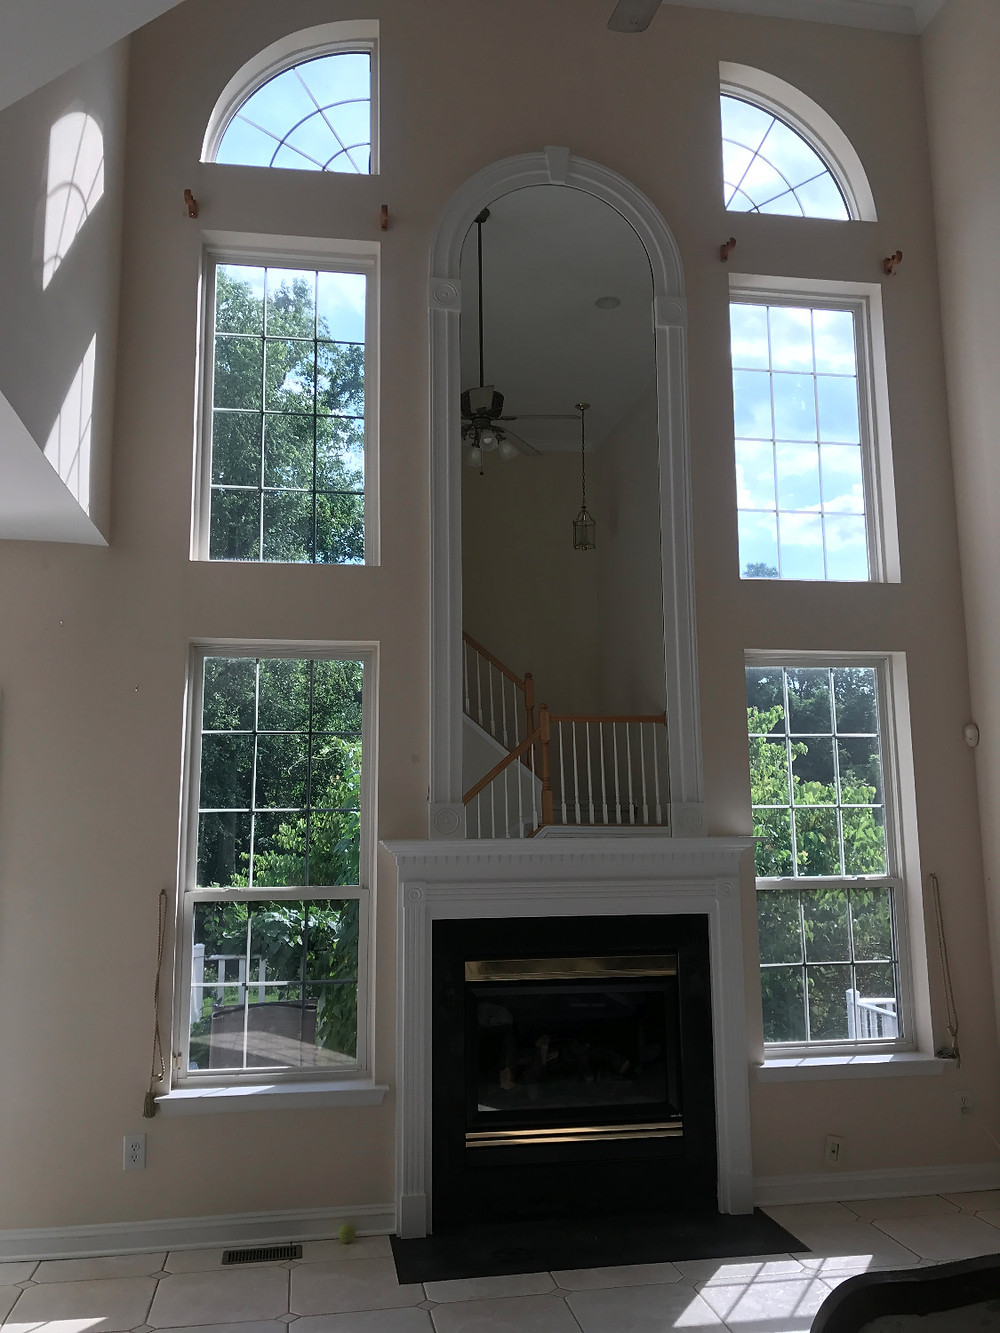 West Chester townhouse window tinting by Black Diamond Tint